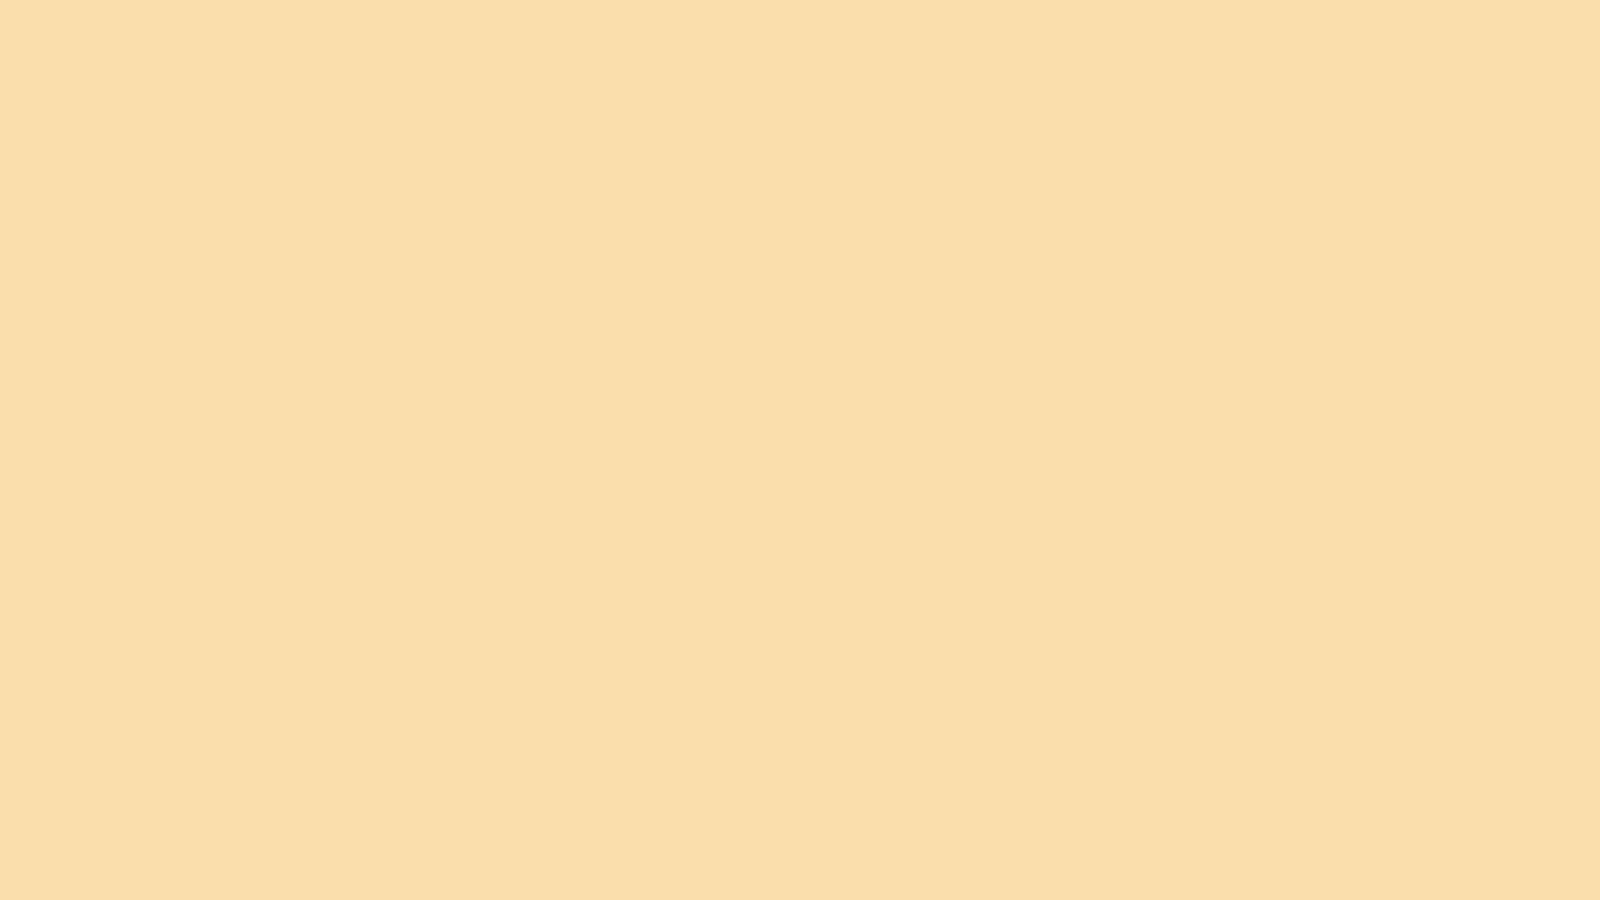 1600x900 Peach-yellow Solid Color Background